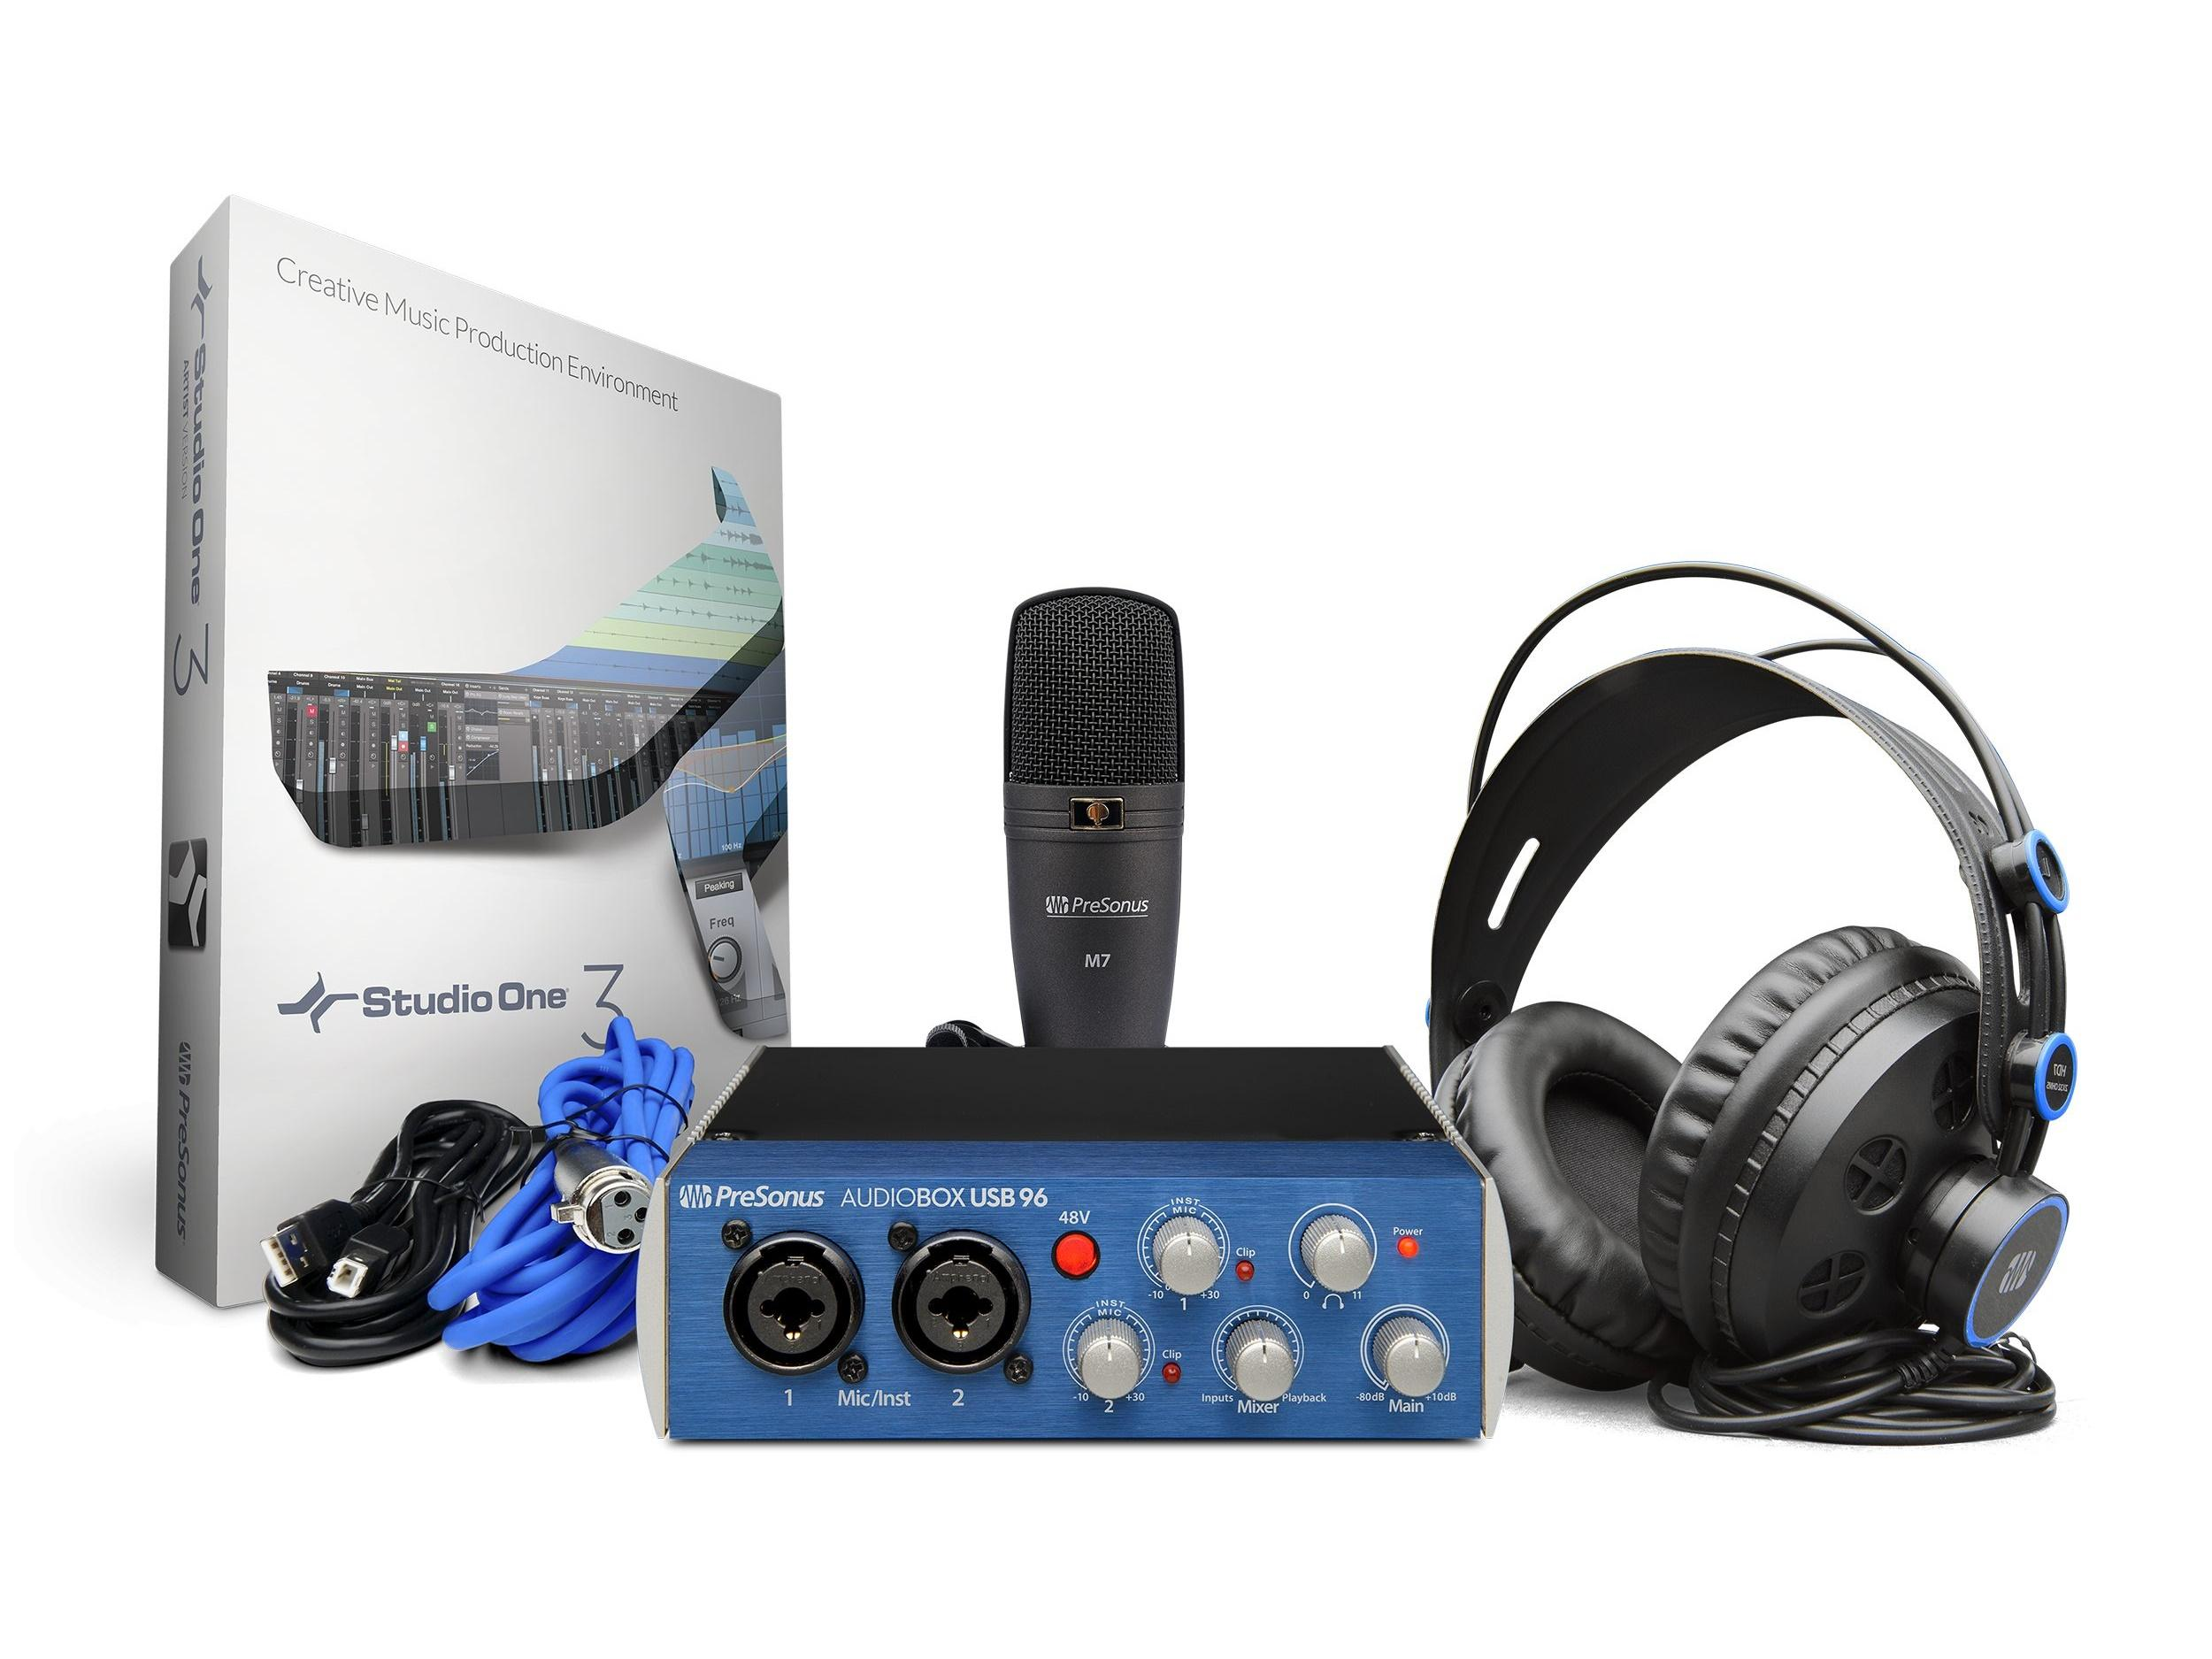 AudioBox 96 Studio 2x2 USB 2.0 Recording System/96kHz Audio Interface w HD7 Headphones/M7 Mic/Studio One Artist by PreSonus